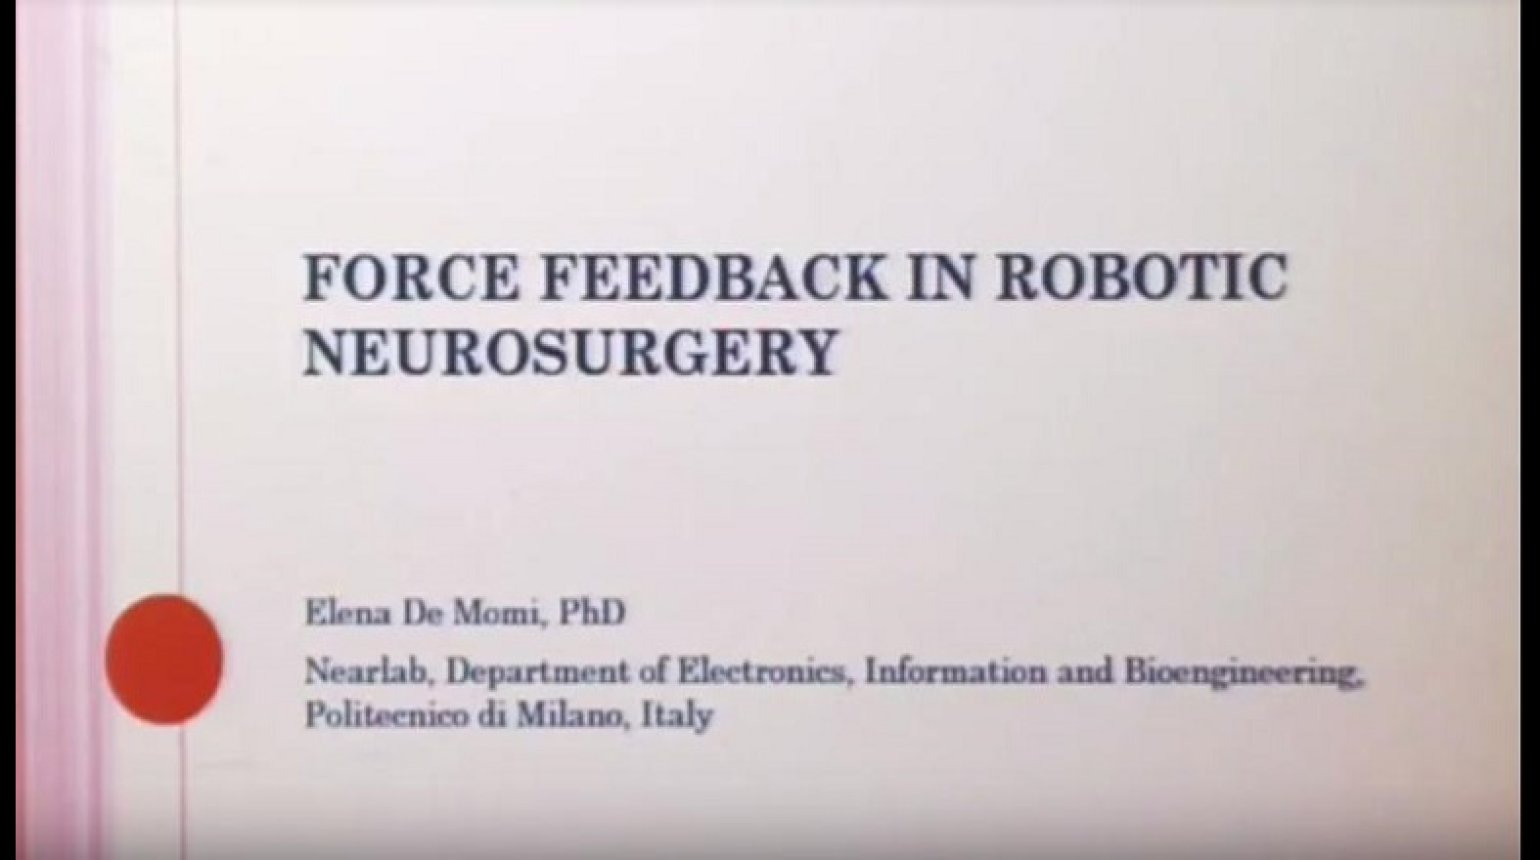 Force sensing in robotic neurosurgery